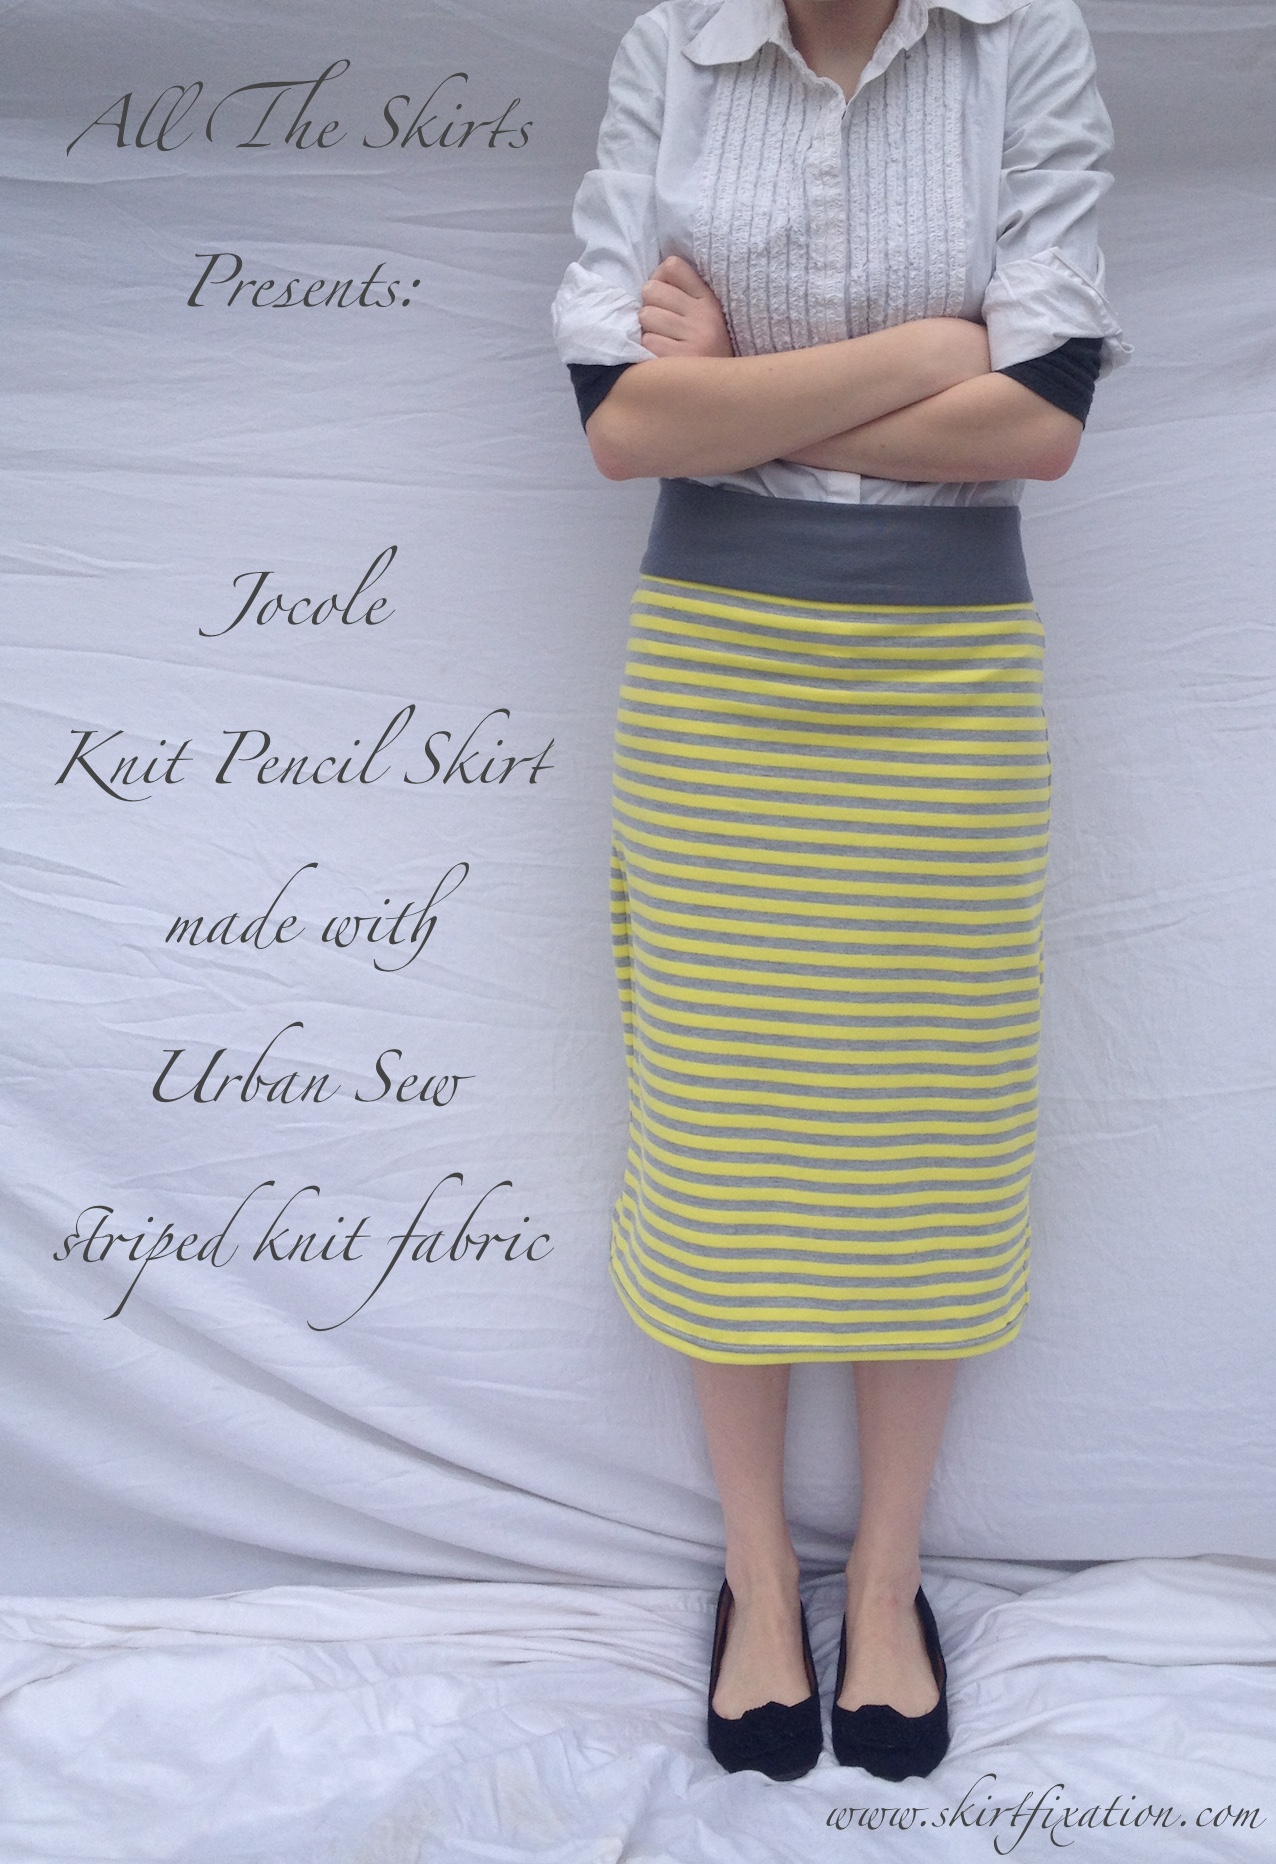 Jocole knit pencil skirt sewn by Skirt Fixation with Urban Sew fabric